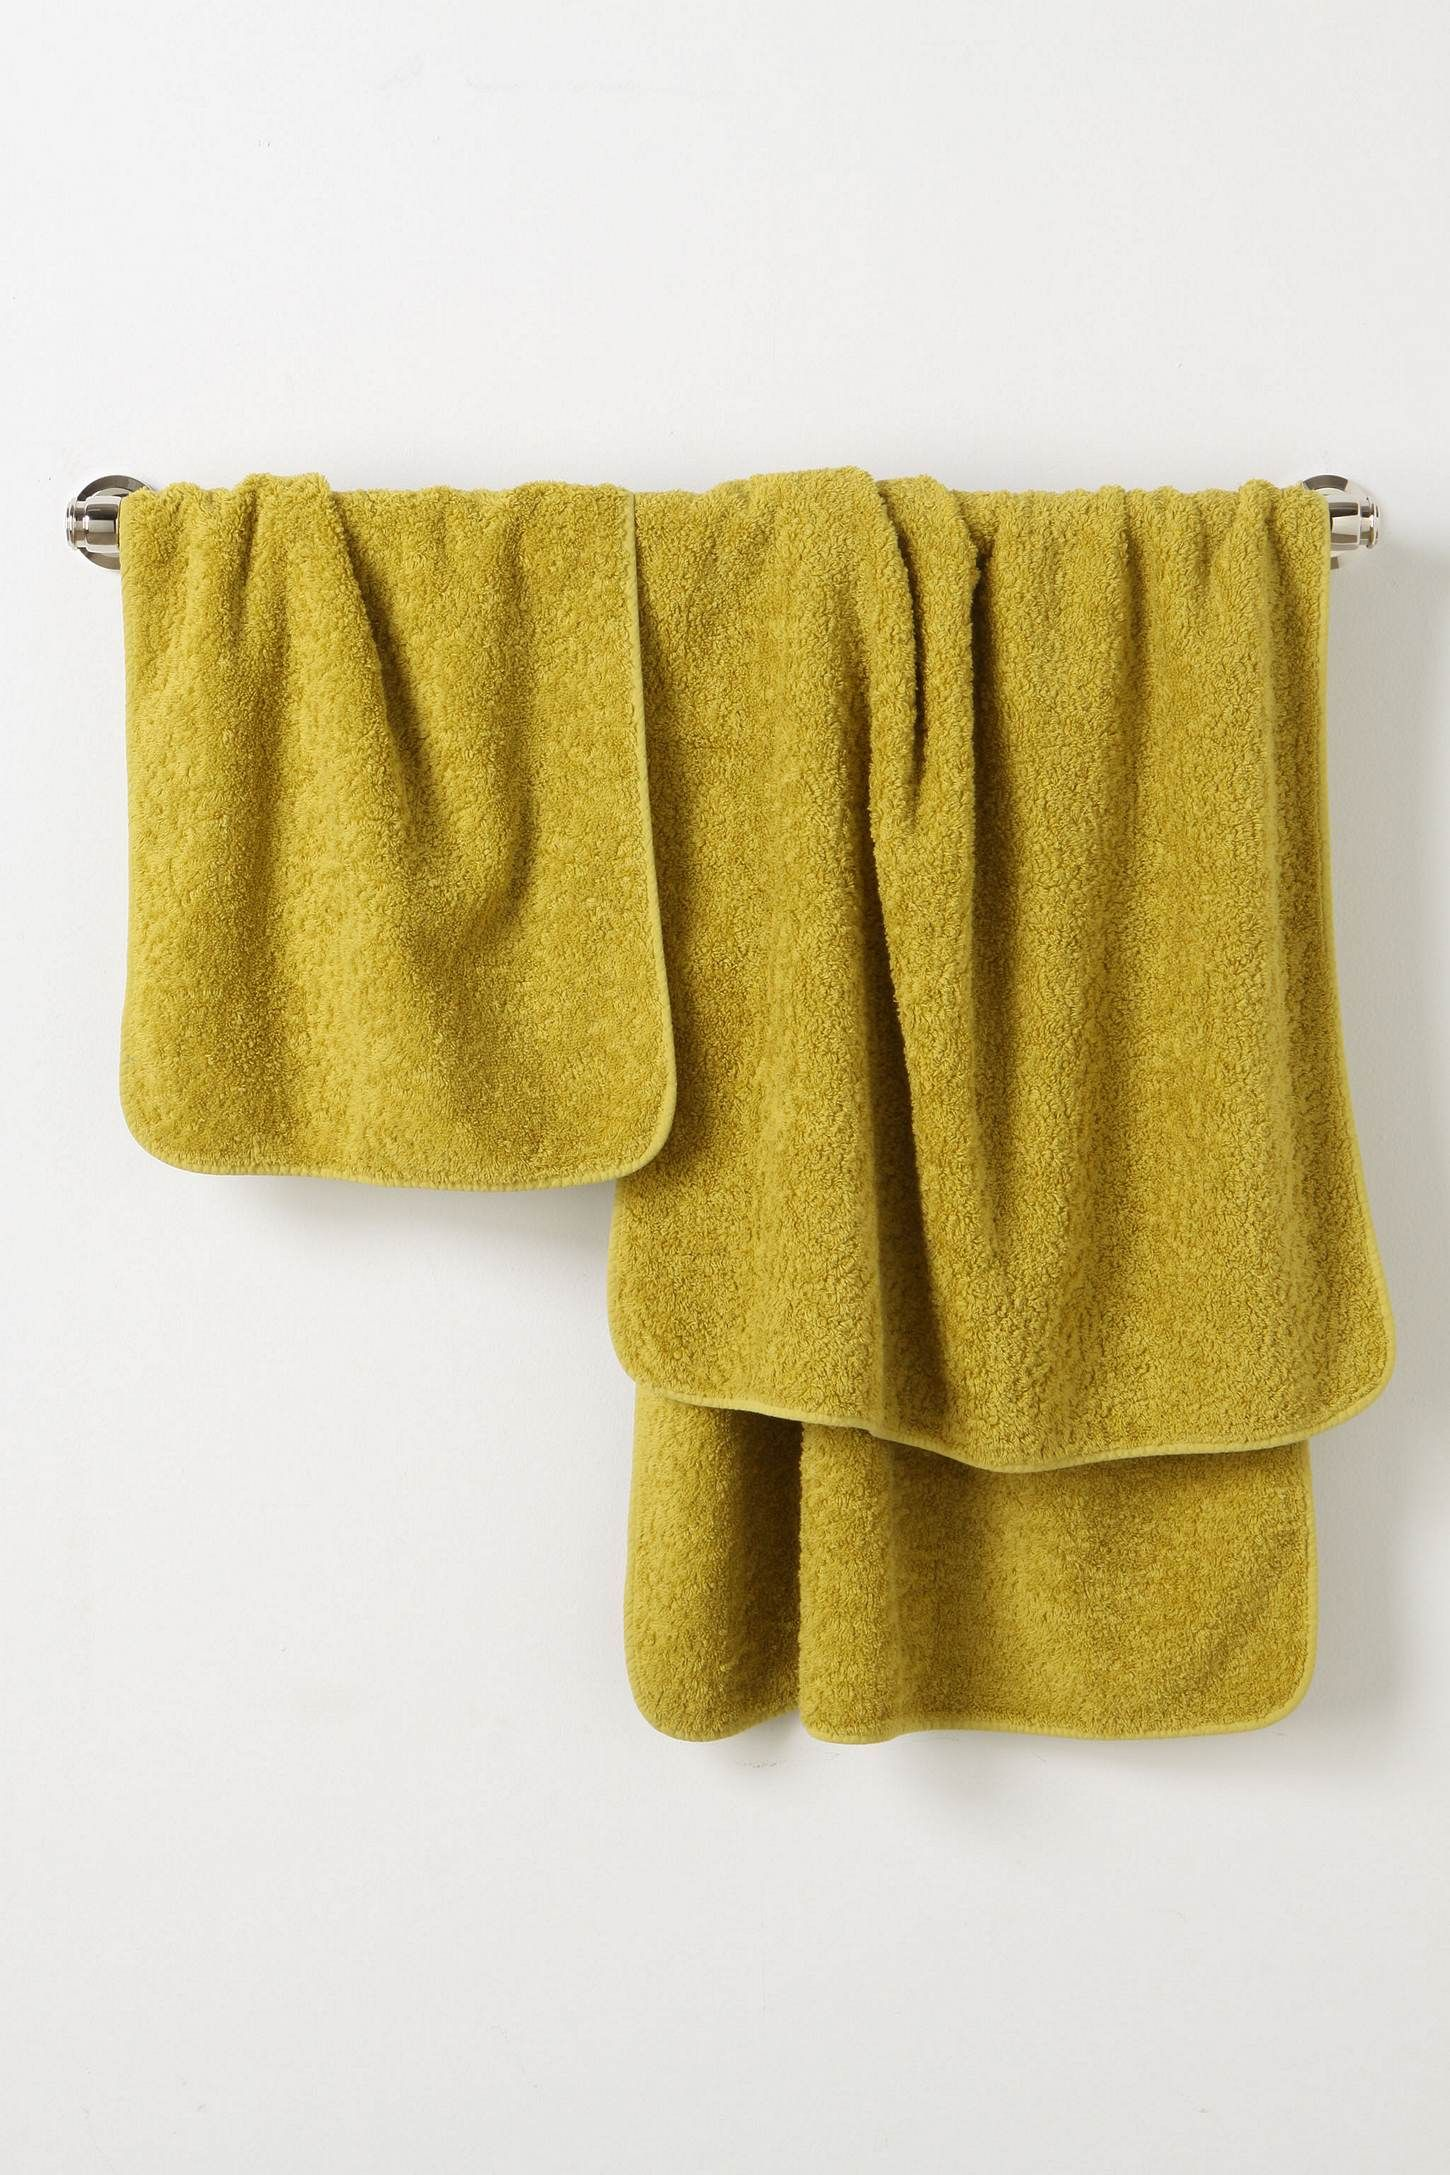 Chartreuse Bath Towels Towel Collection Anthropologie Towels Spring Outfits